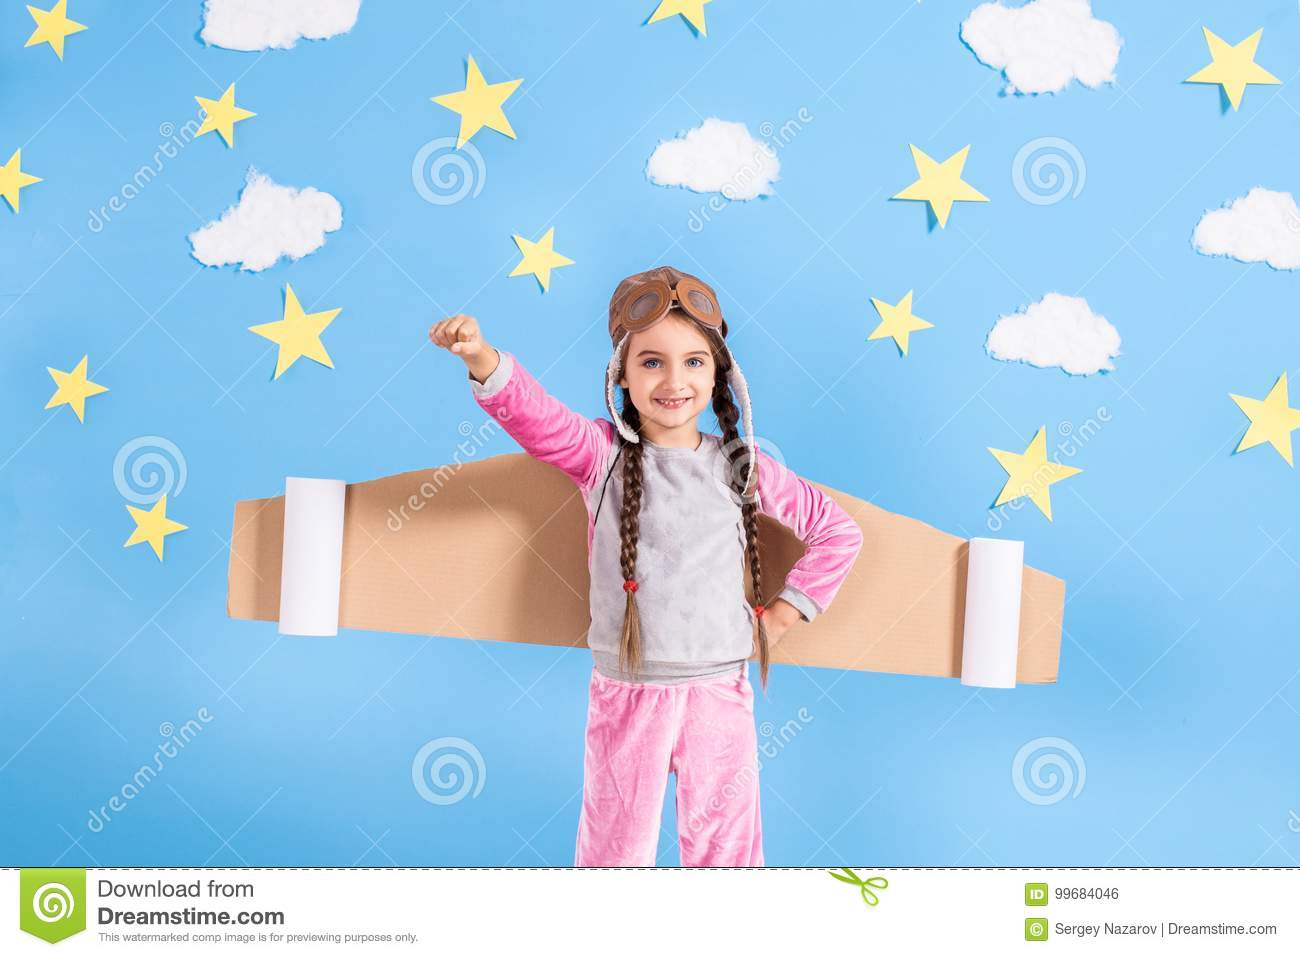 https://thumbs.dreamstime.com/z/little-child-girl-astronaut-costume-playing-dreaming-becoming-spaceman-little-child-girl-astronaut-costume-99684046.jpg